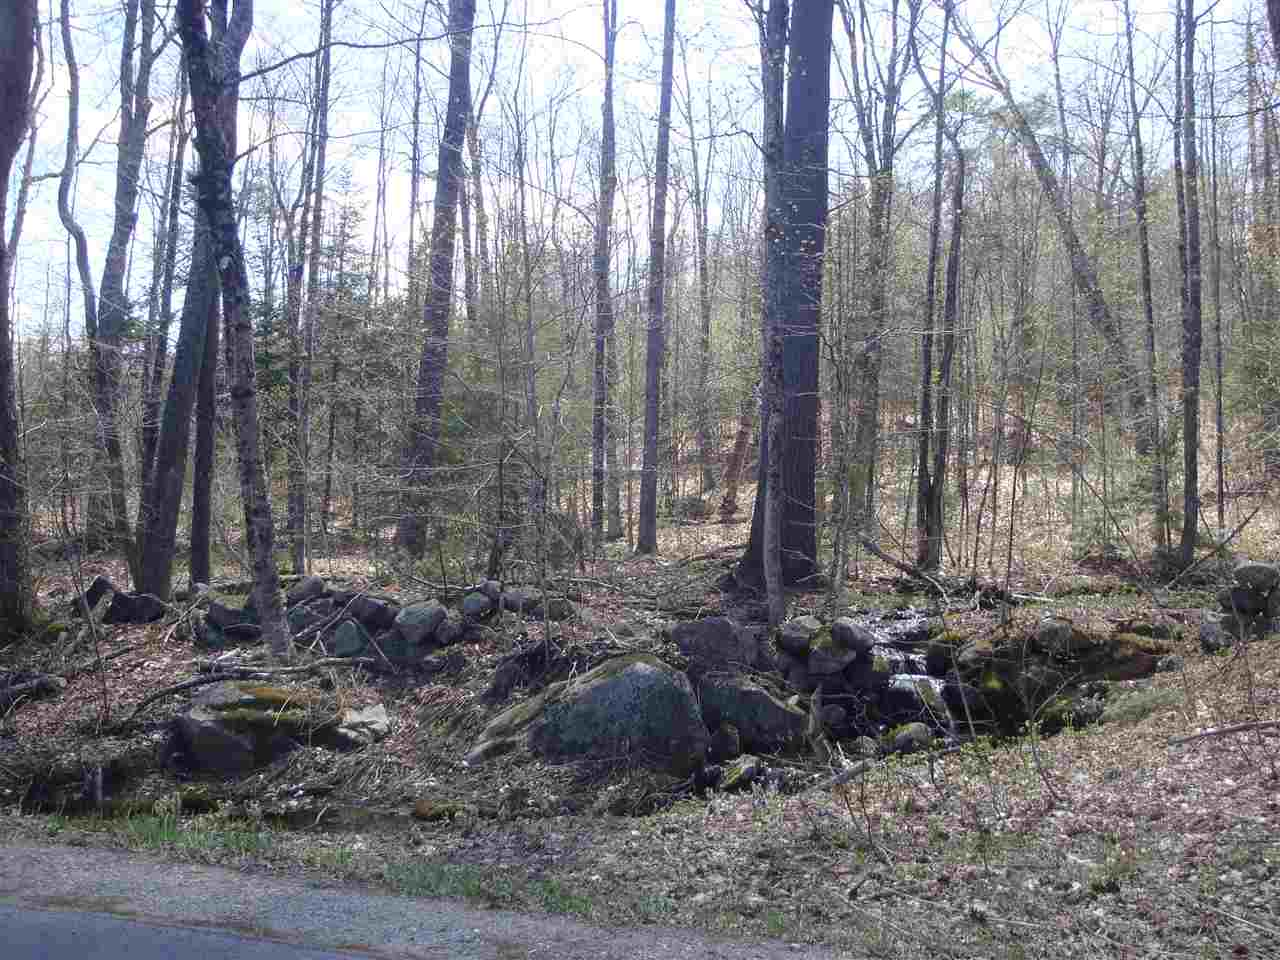 MLS 4805651: Lot 2 North Groton Road, Groton NH